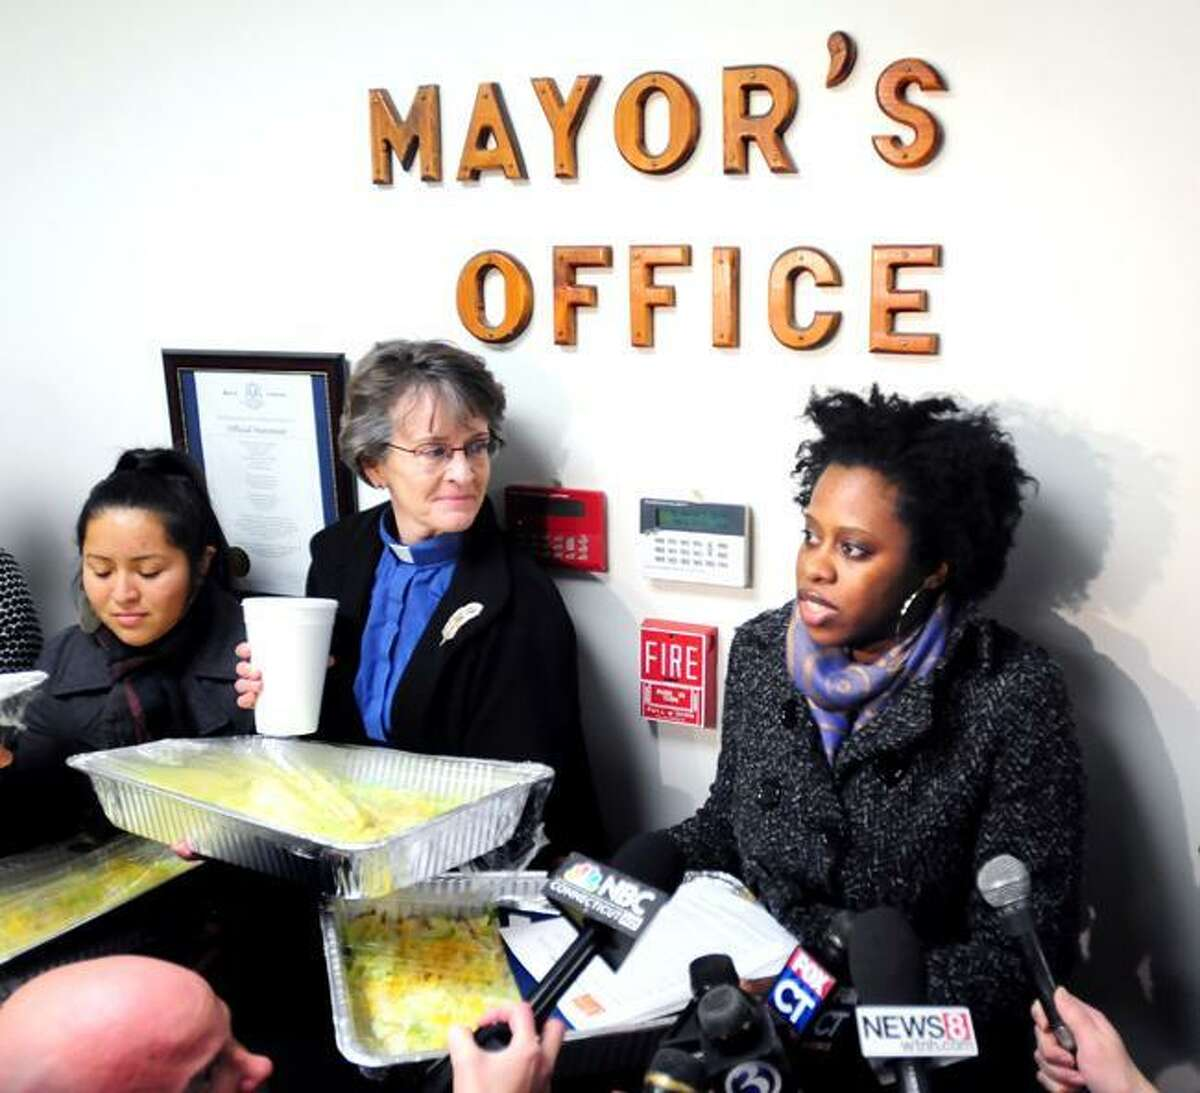 Mirtala Sanchez of Mecha De Yale (left), Kathleen McTigue (center), senior minister, Unitarian Society of New Haven, listen to Latrina Kelly (right), interim executive director of the Junta for Progressive Action, make a statement during a delivery of nearly 500 tacos to the office of Mayor Joseph Maturo, Jr., at East Haven Town Hall on 1/26/2012.Photo by Arnold Gold/New Haven Register AG0436E